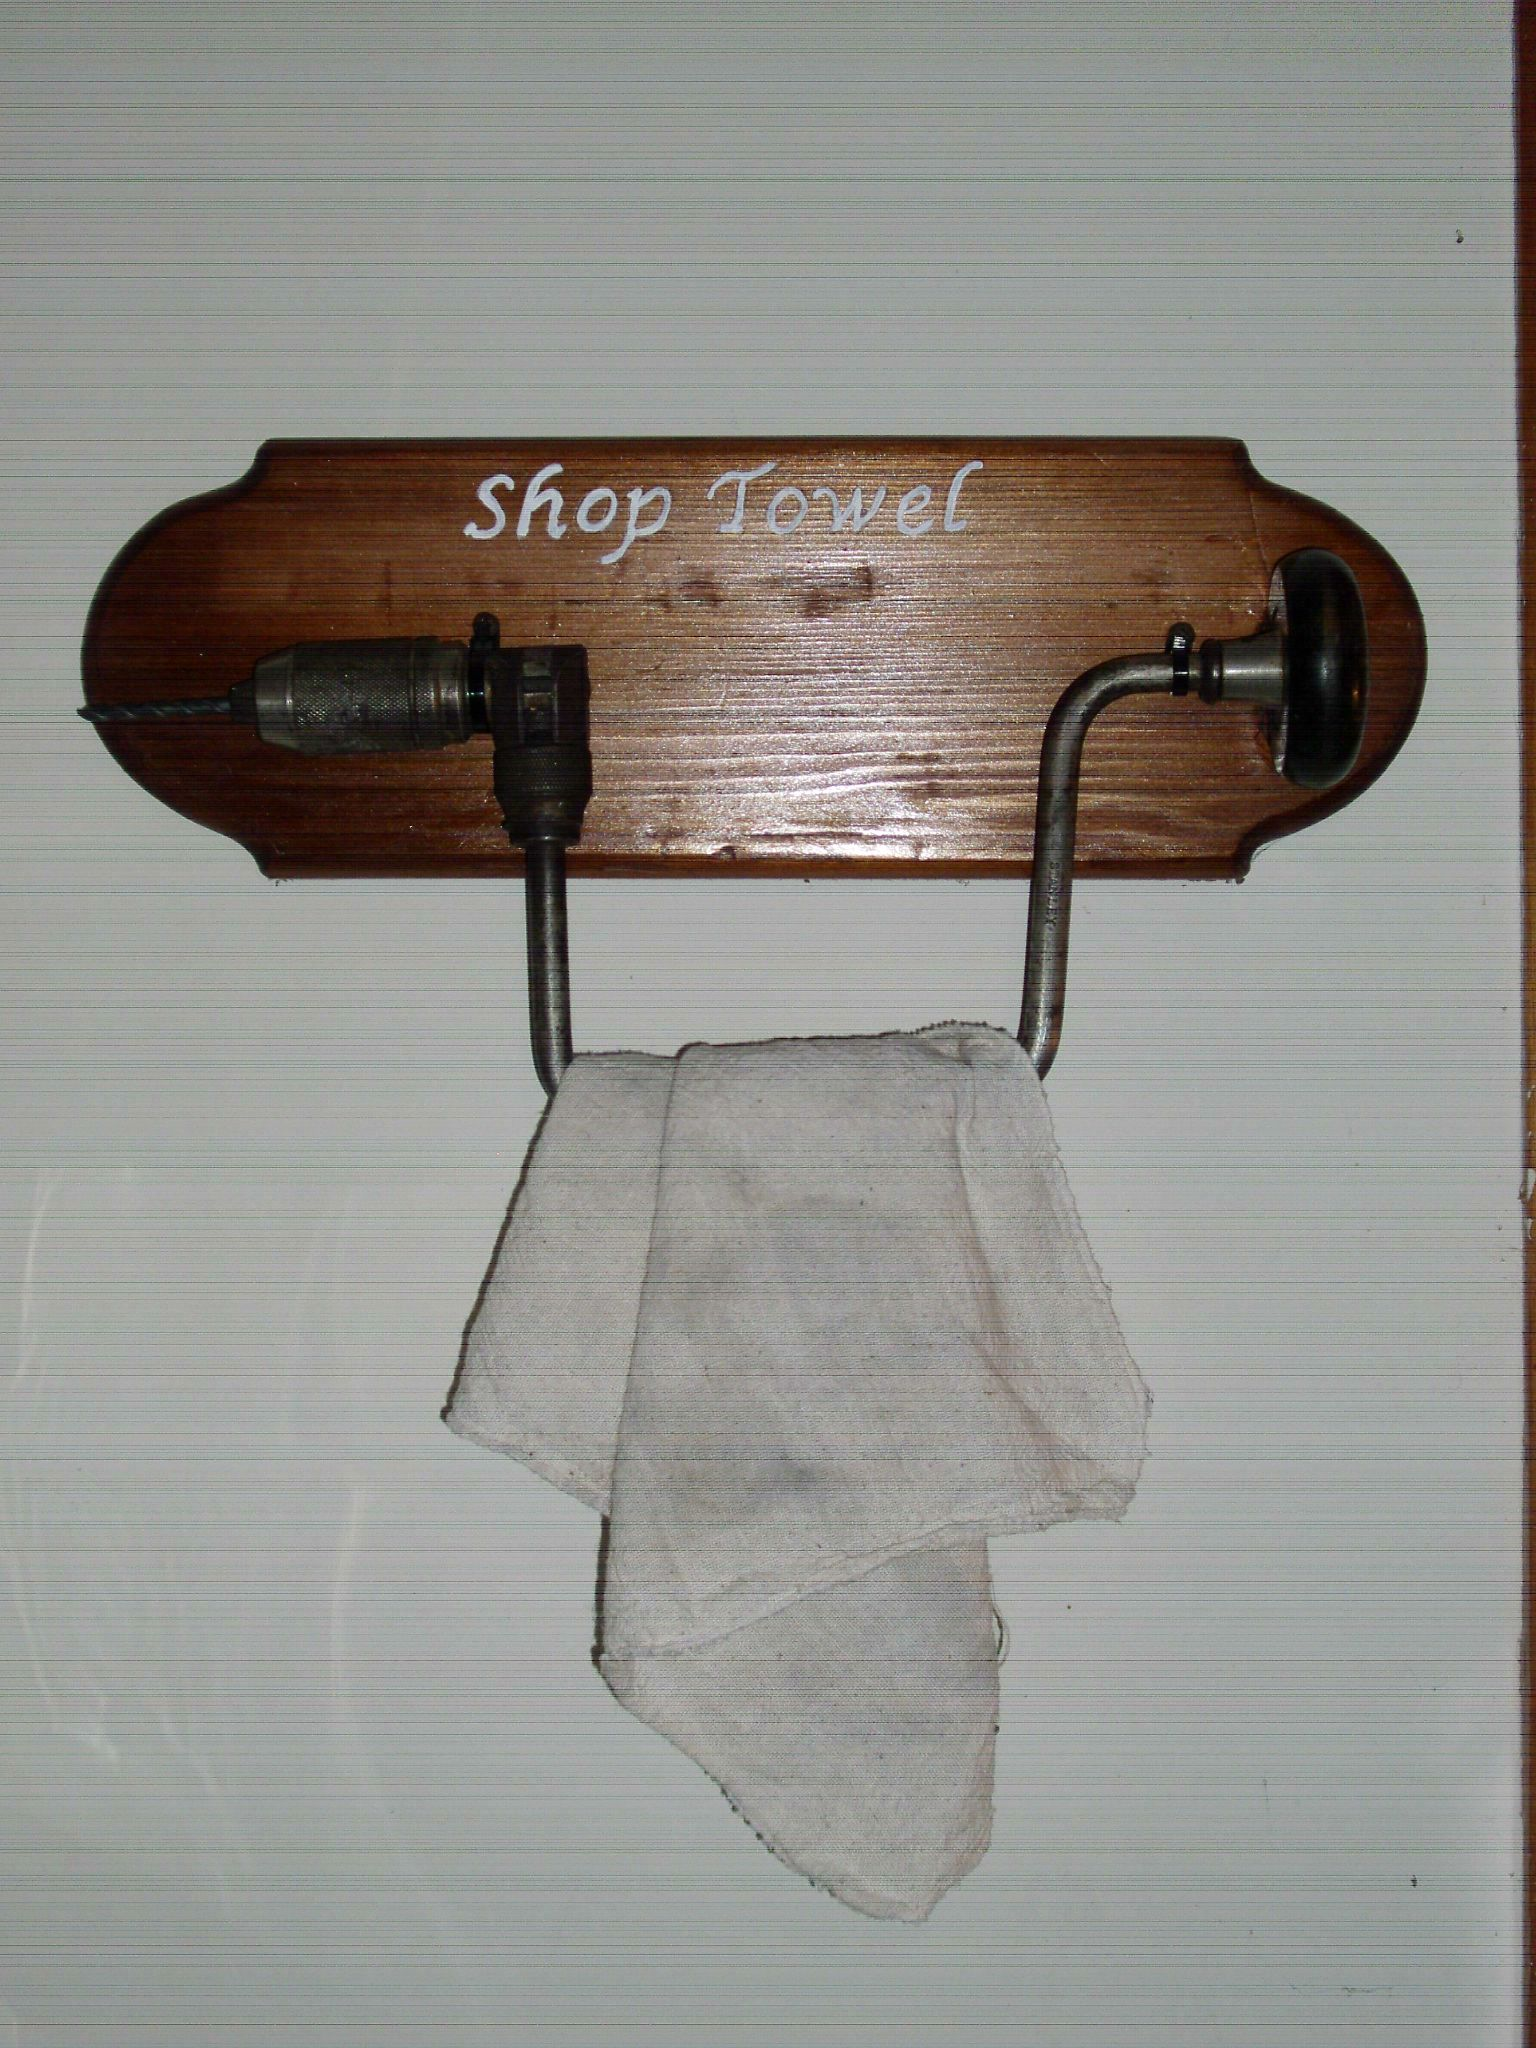 Farmhouse Hand Towel Holder Shop Towel Holder Made From An Antique Hand Drill My